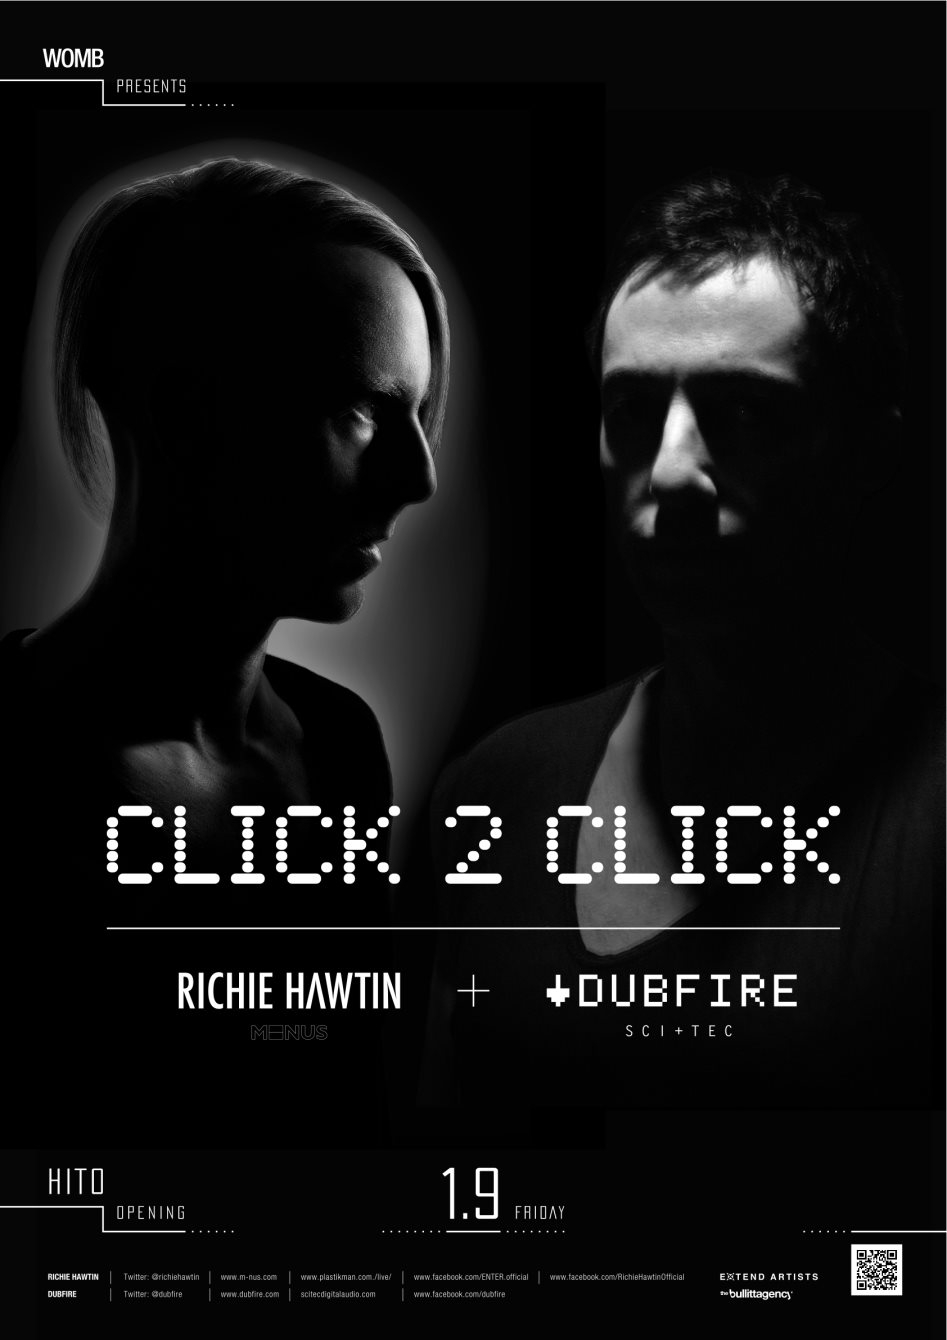 Page 1   09/01/2015   Tokyo   presents Click 2 Click at Womb. Published by DjMaverix on Sunday, 04 January 2015 in Clubs and Discoteque (Events)